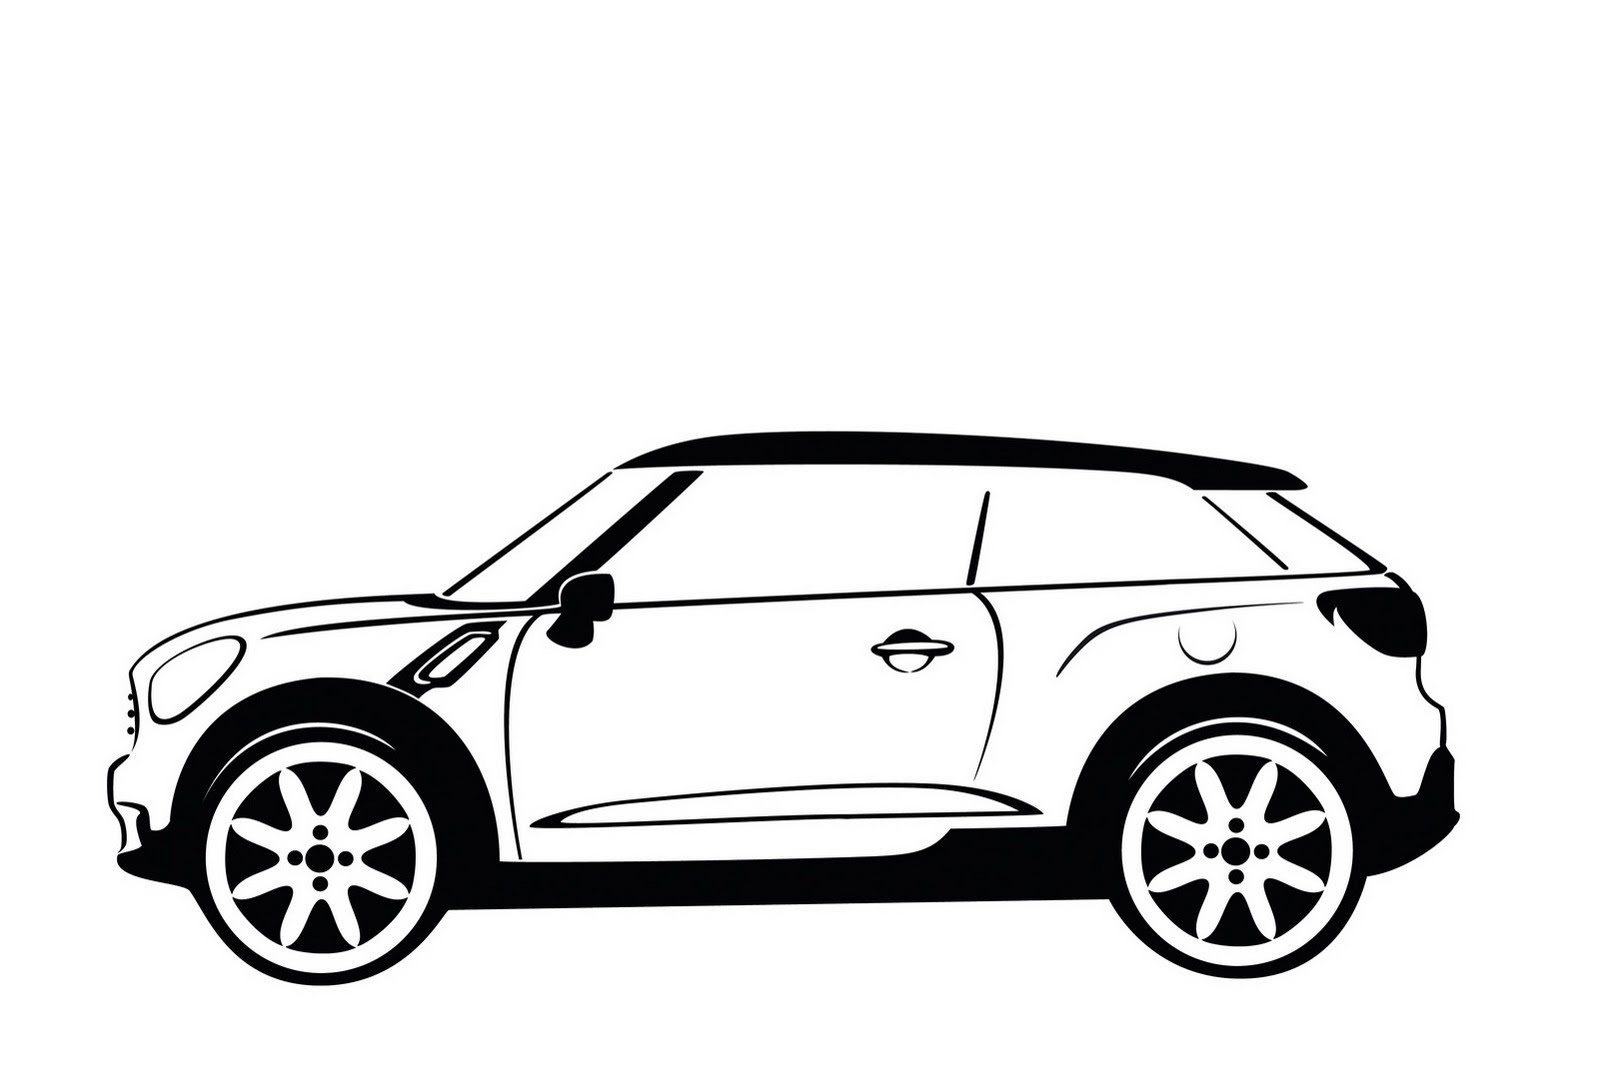 MINI Paceman Concept: Crossman Coupe Study Previewed Ahead